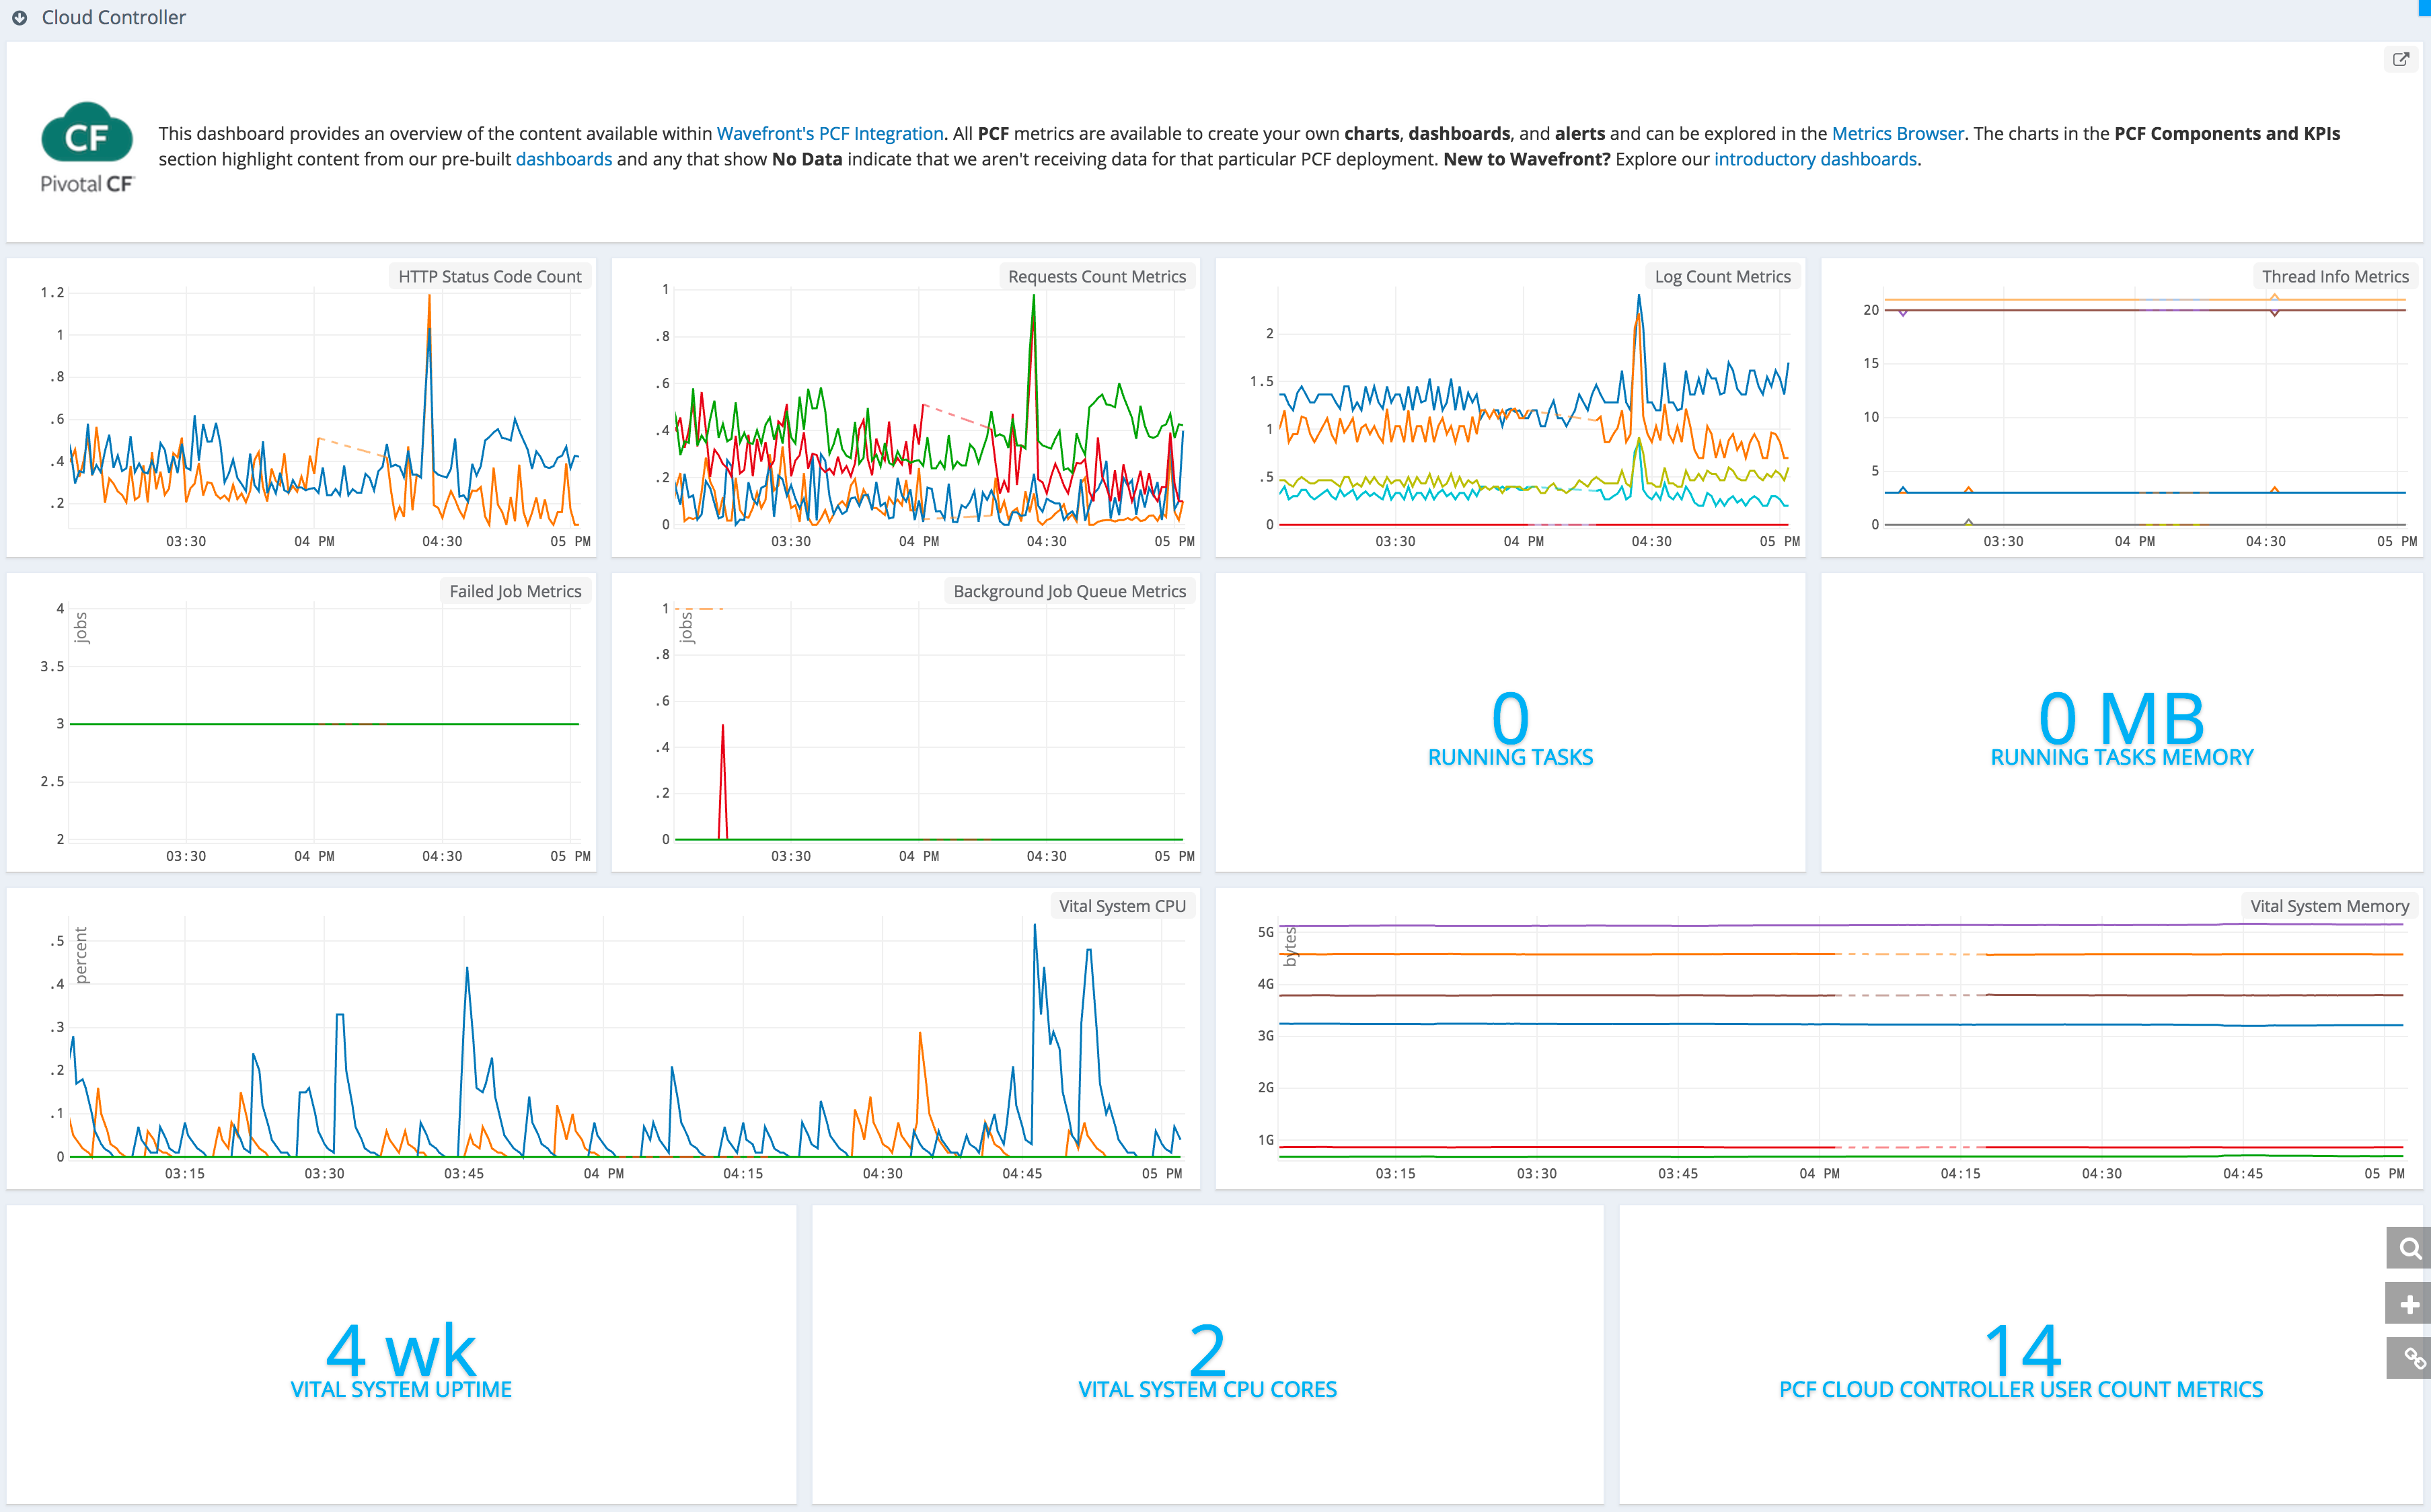 images/cloud_controller_dashboard.png